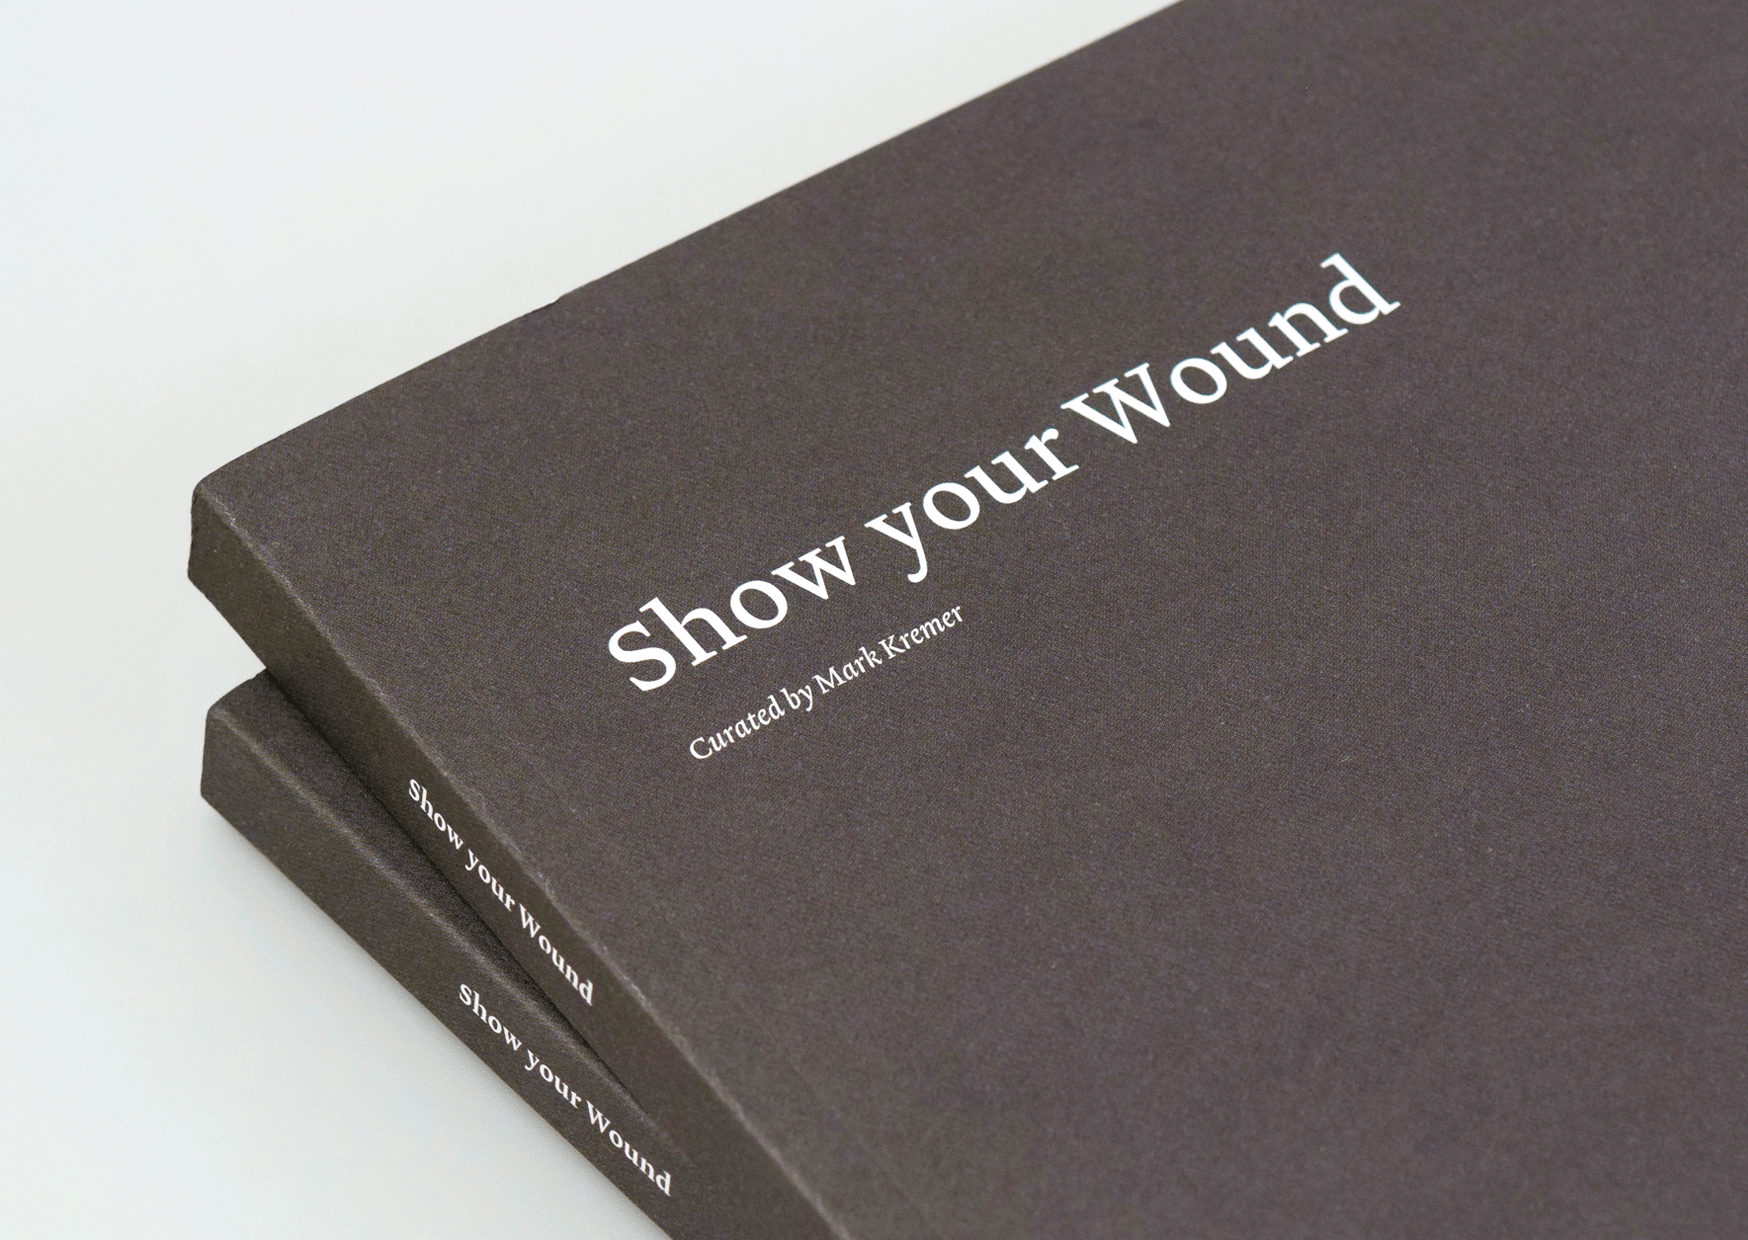 Tefaf Maastricht, Show Your Wound, Studio Enkelvoud